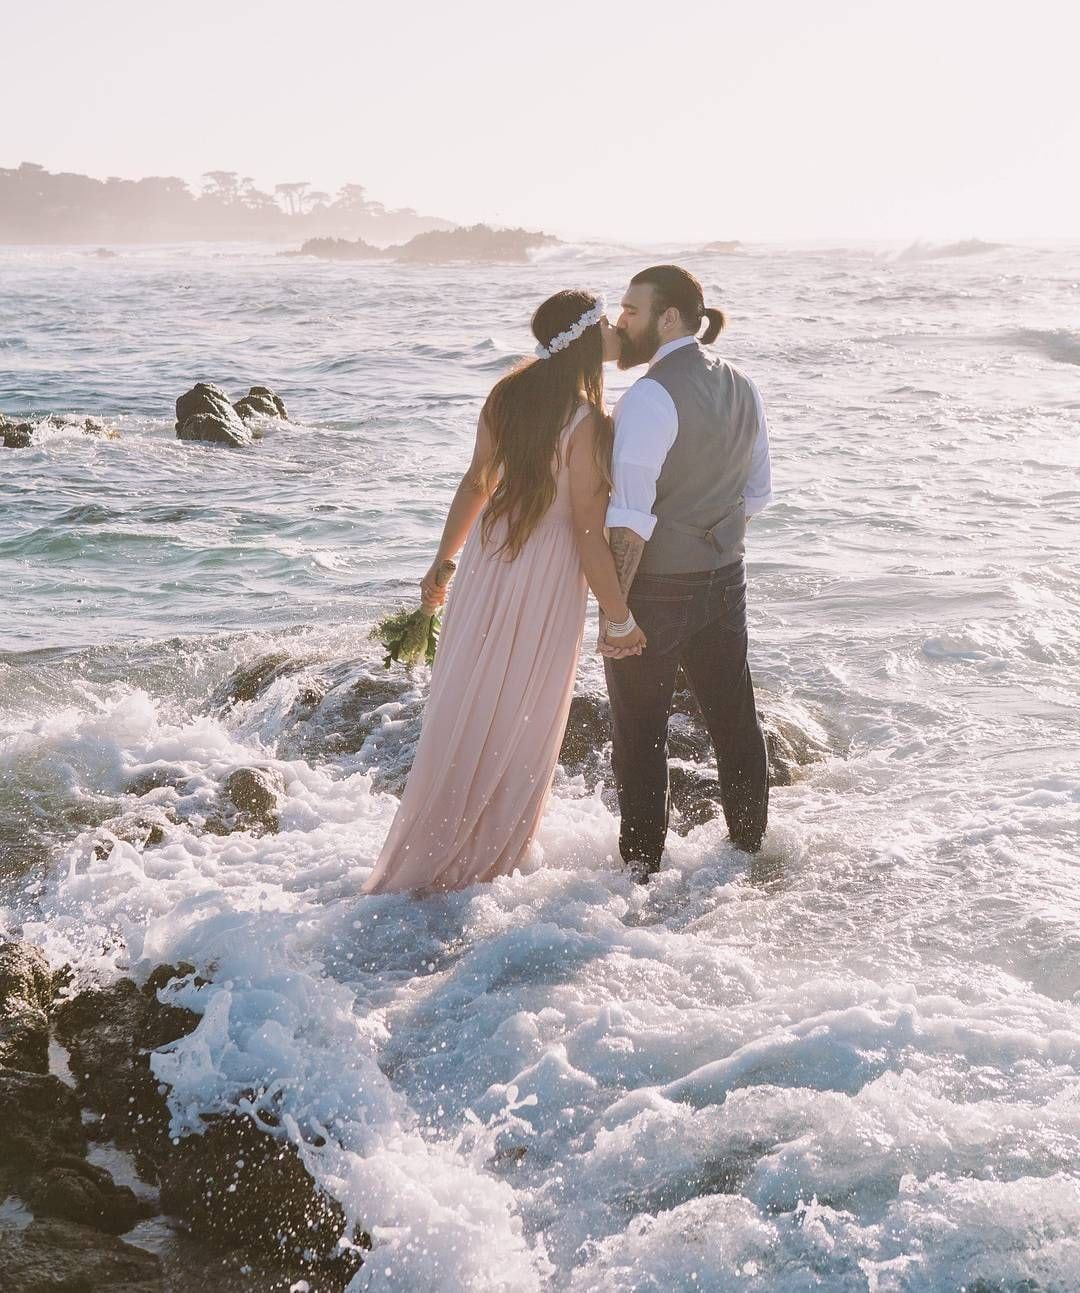 A man and woman kiss while ocean water surrounds them